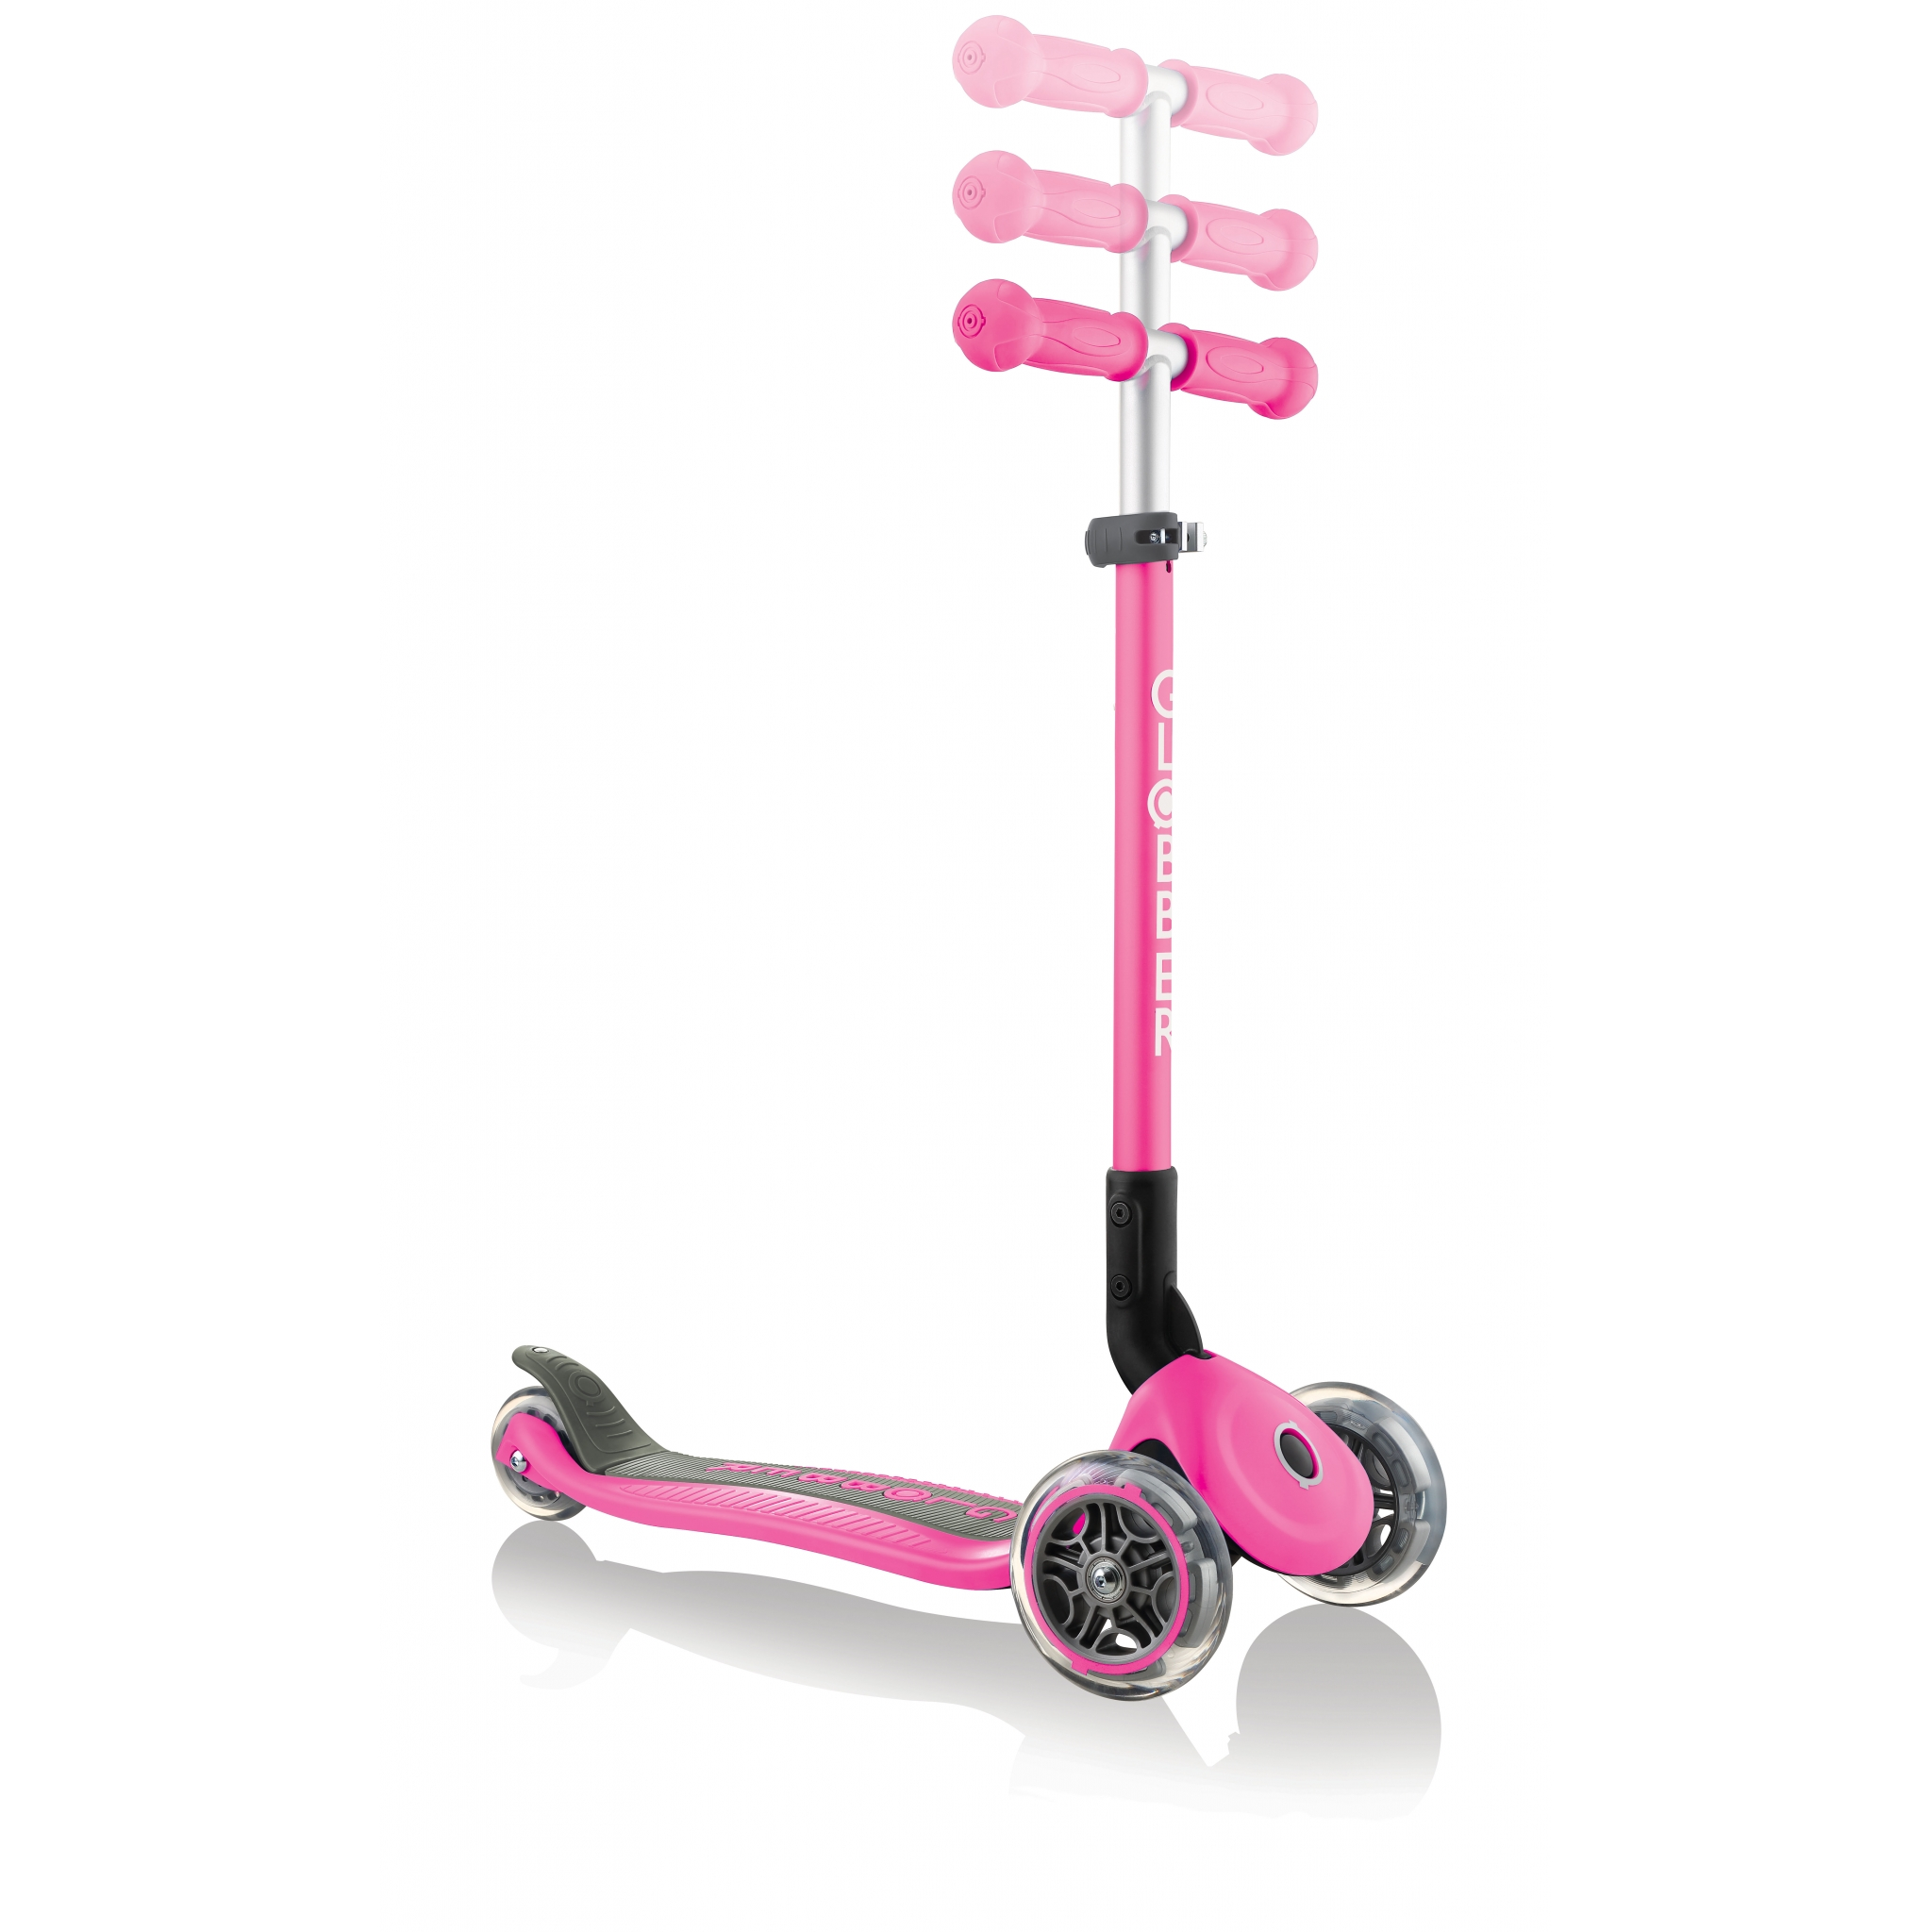 PRIMO-FOLDABLE-adjustable-scooter-for-kids-neon-pink